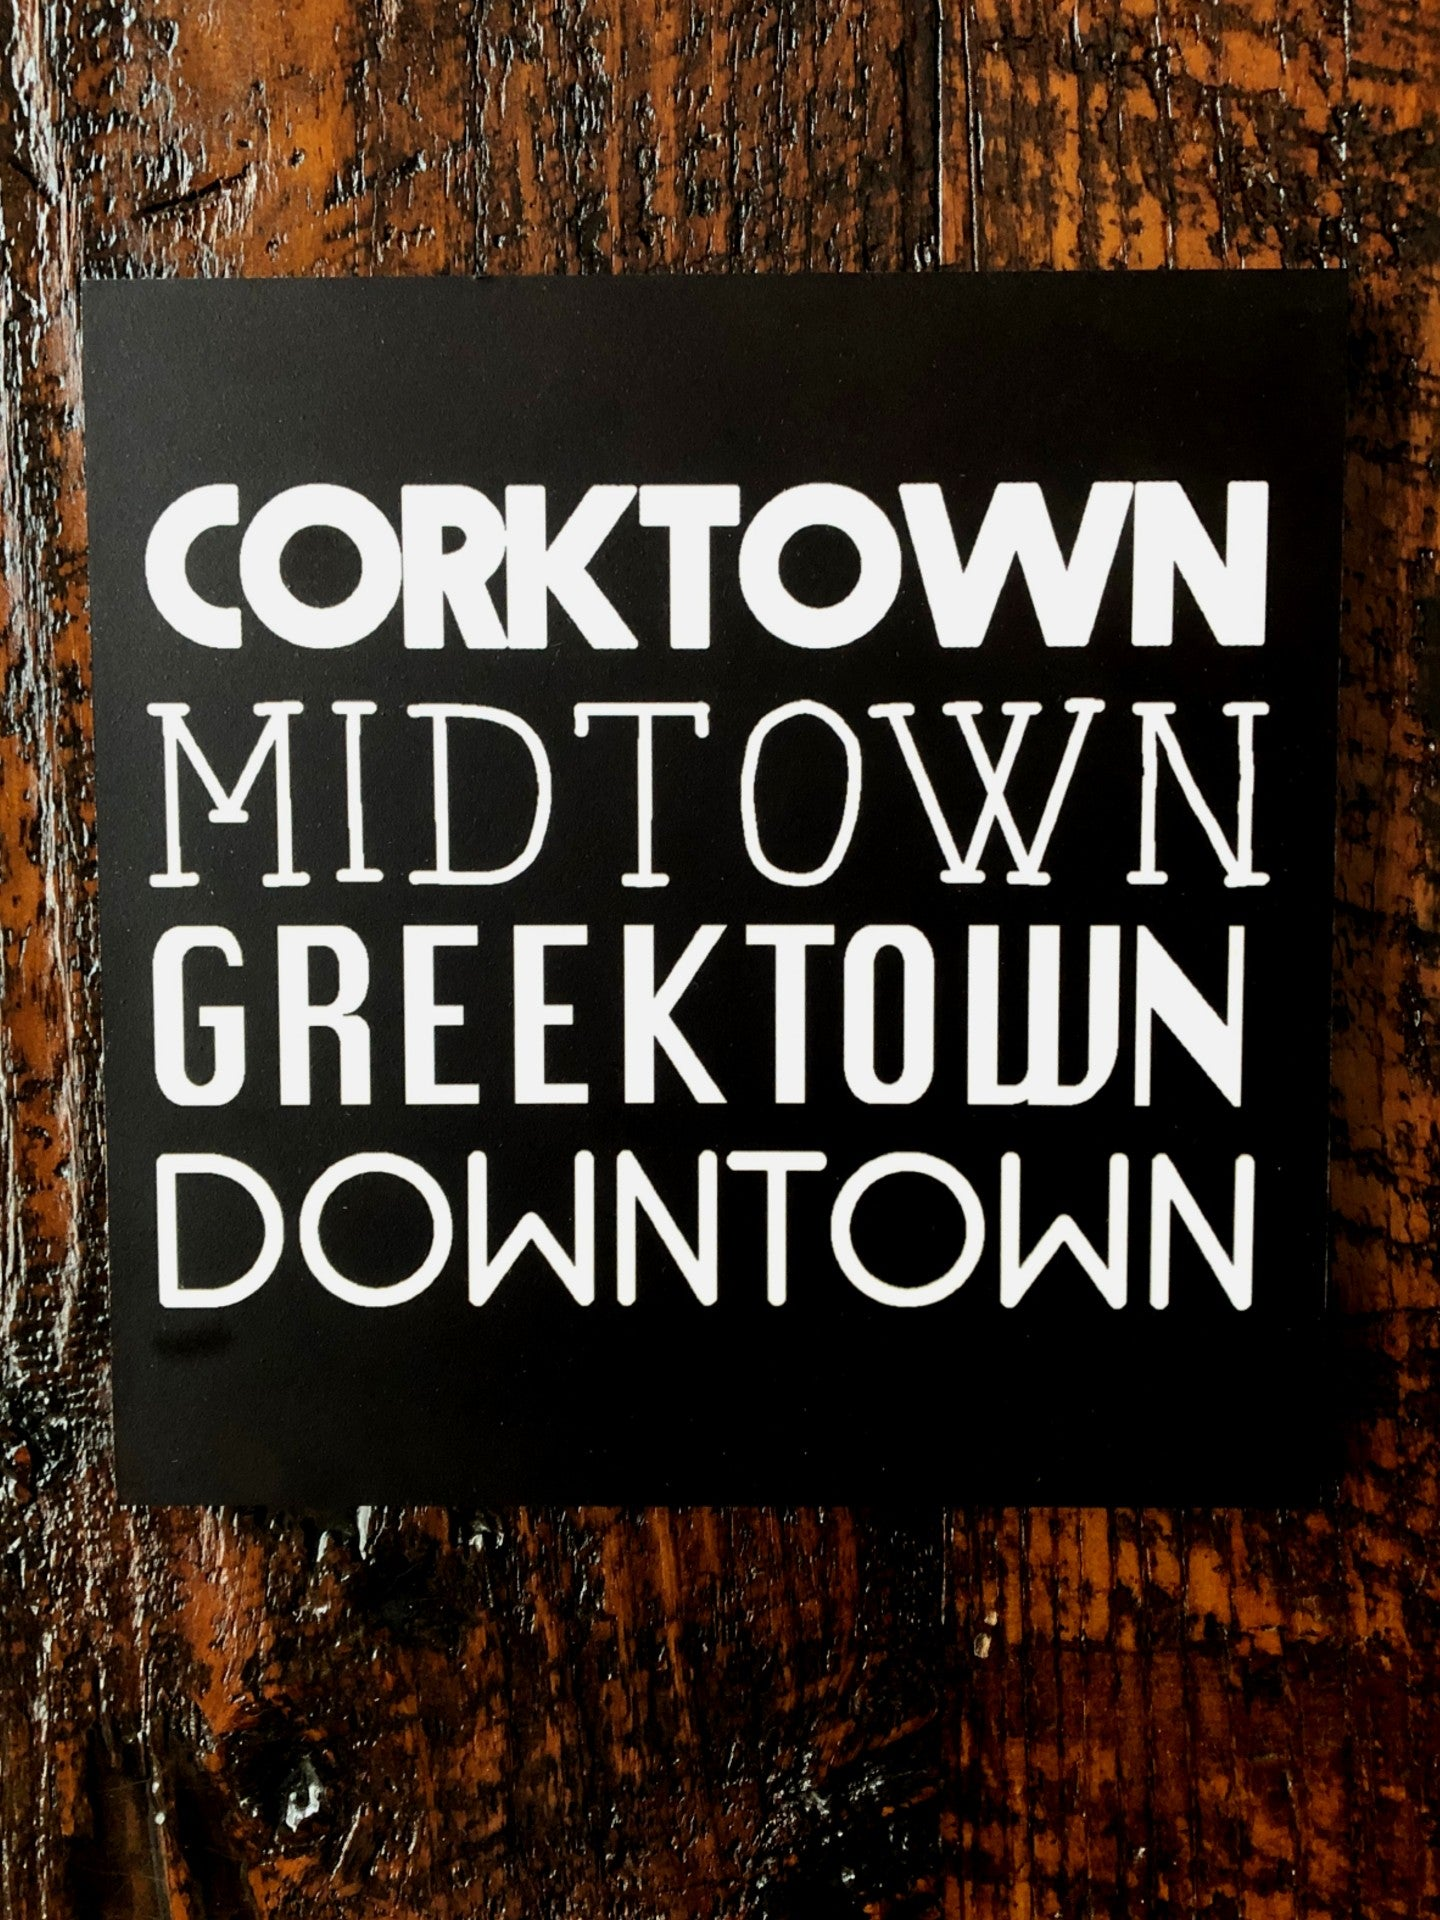 Corktown Midtown Greektown Downtown Black Woodblock Print - Pure Detroit